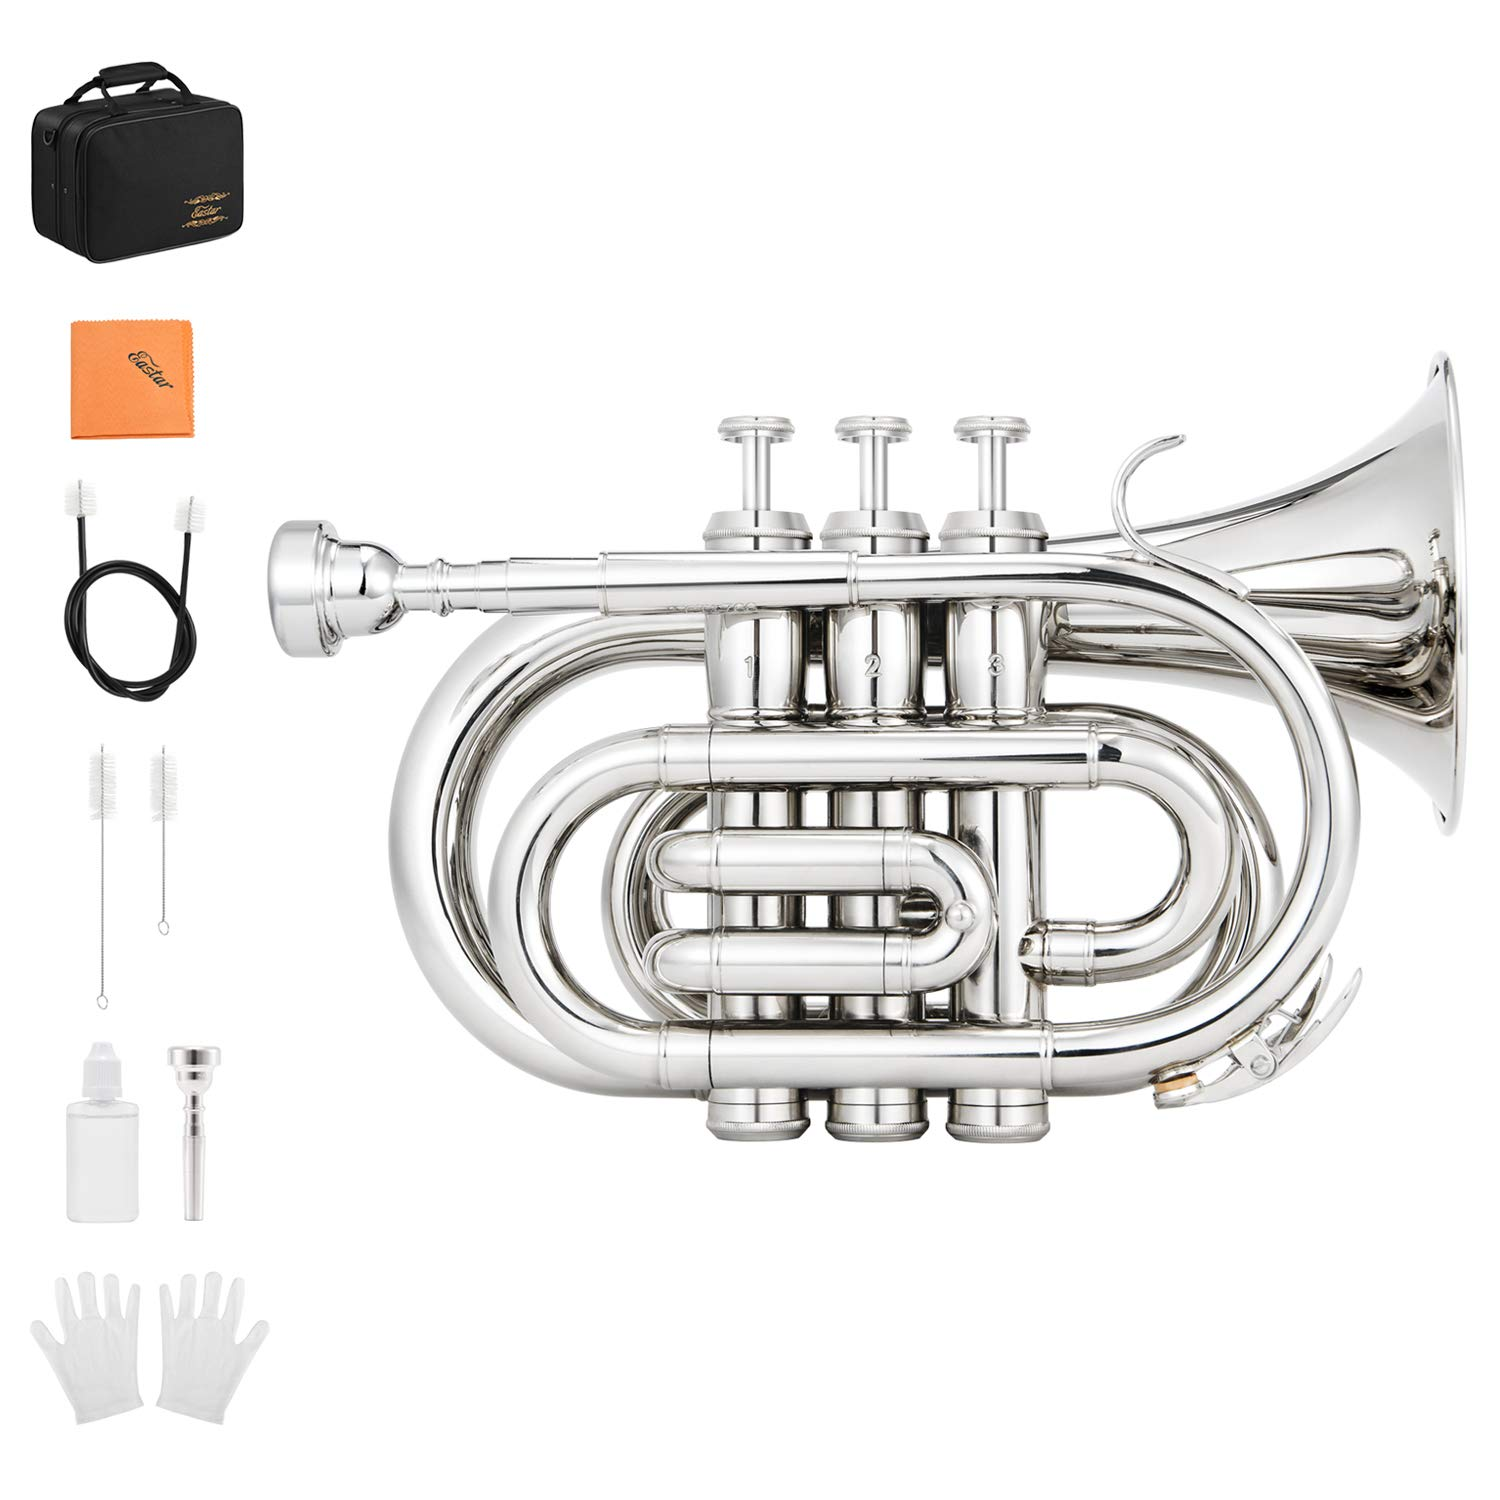 Eastar ETR-330N Pocket Trumpet Bb Nickel Plated with Hard Case, Gloves, 7 C Mouthpiece, Valve Oil, Trumpet Cleaning Kit by Eastar